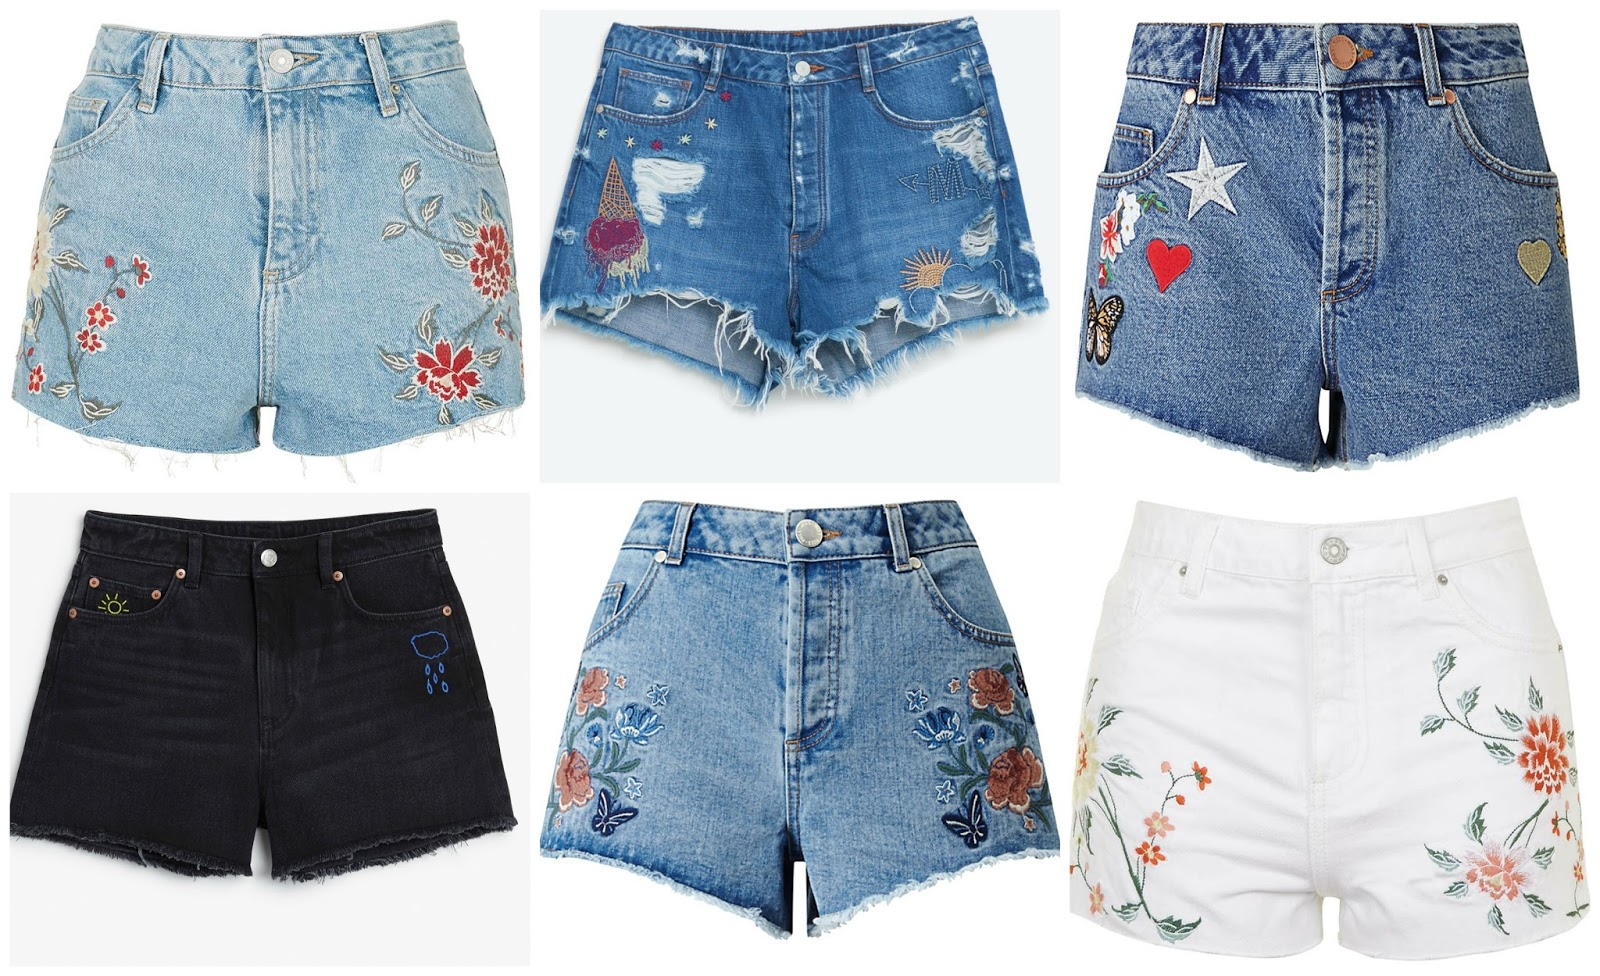 The embroidered shorts edit sarah rose goes